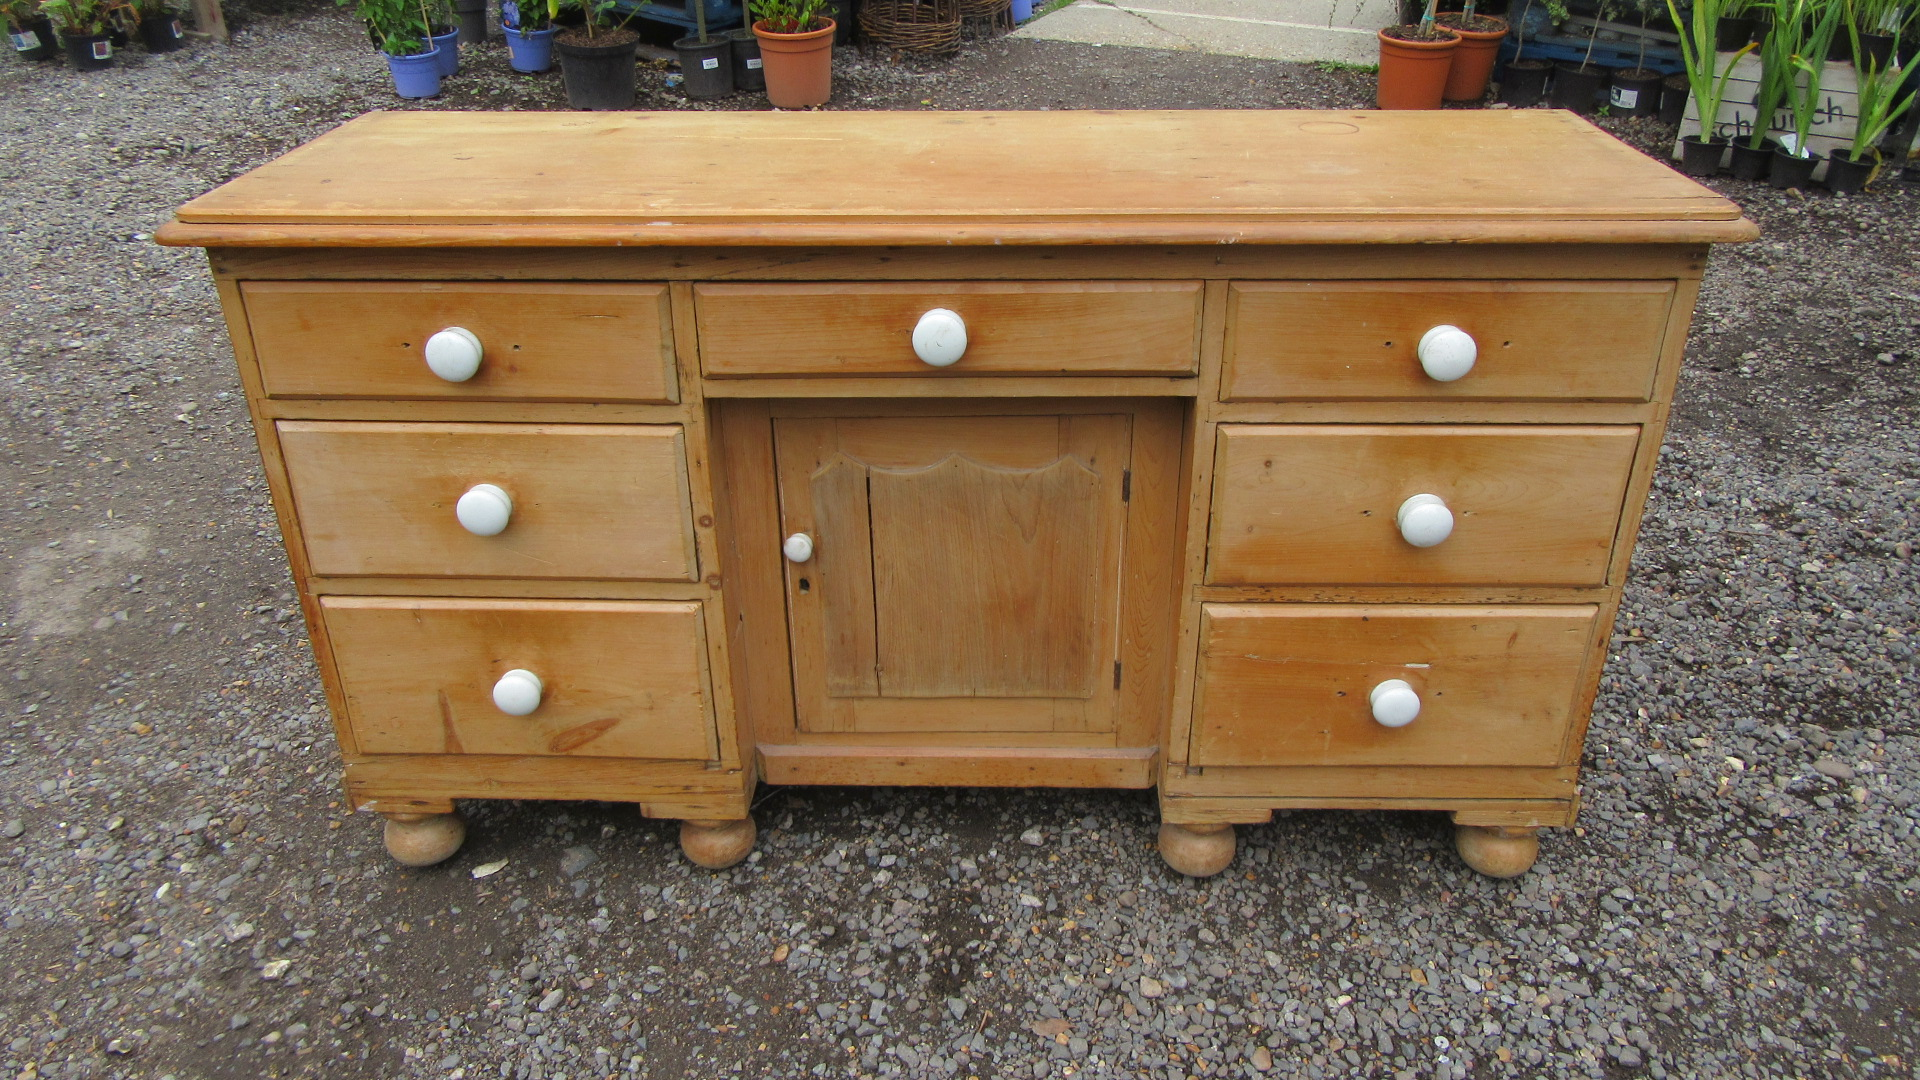 ANTIQUE VICTORIAN COUNTRY PINE DRESSER BASE / SIDEBOARD